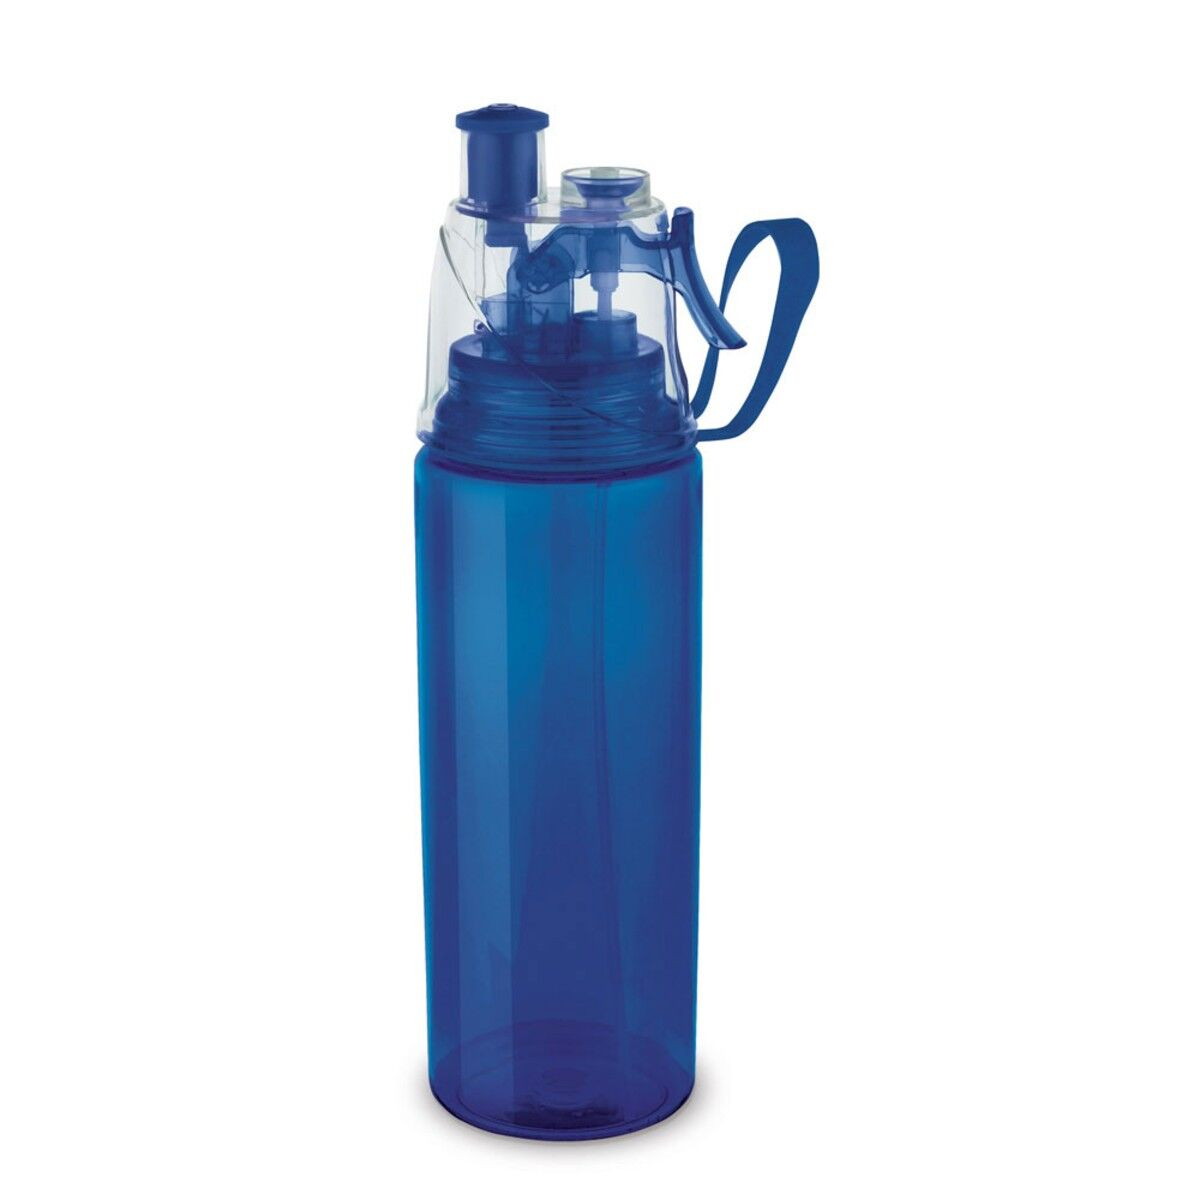 Push-Pull Sports Bottle with Vaporizer  in Blue